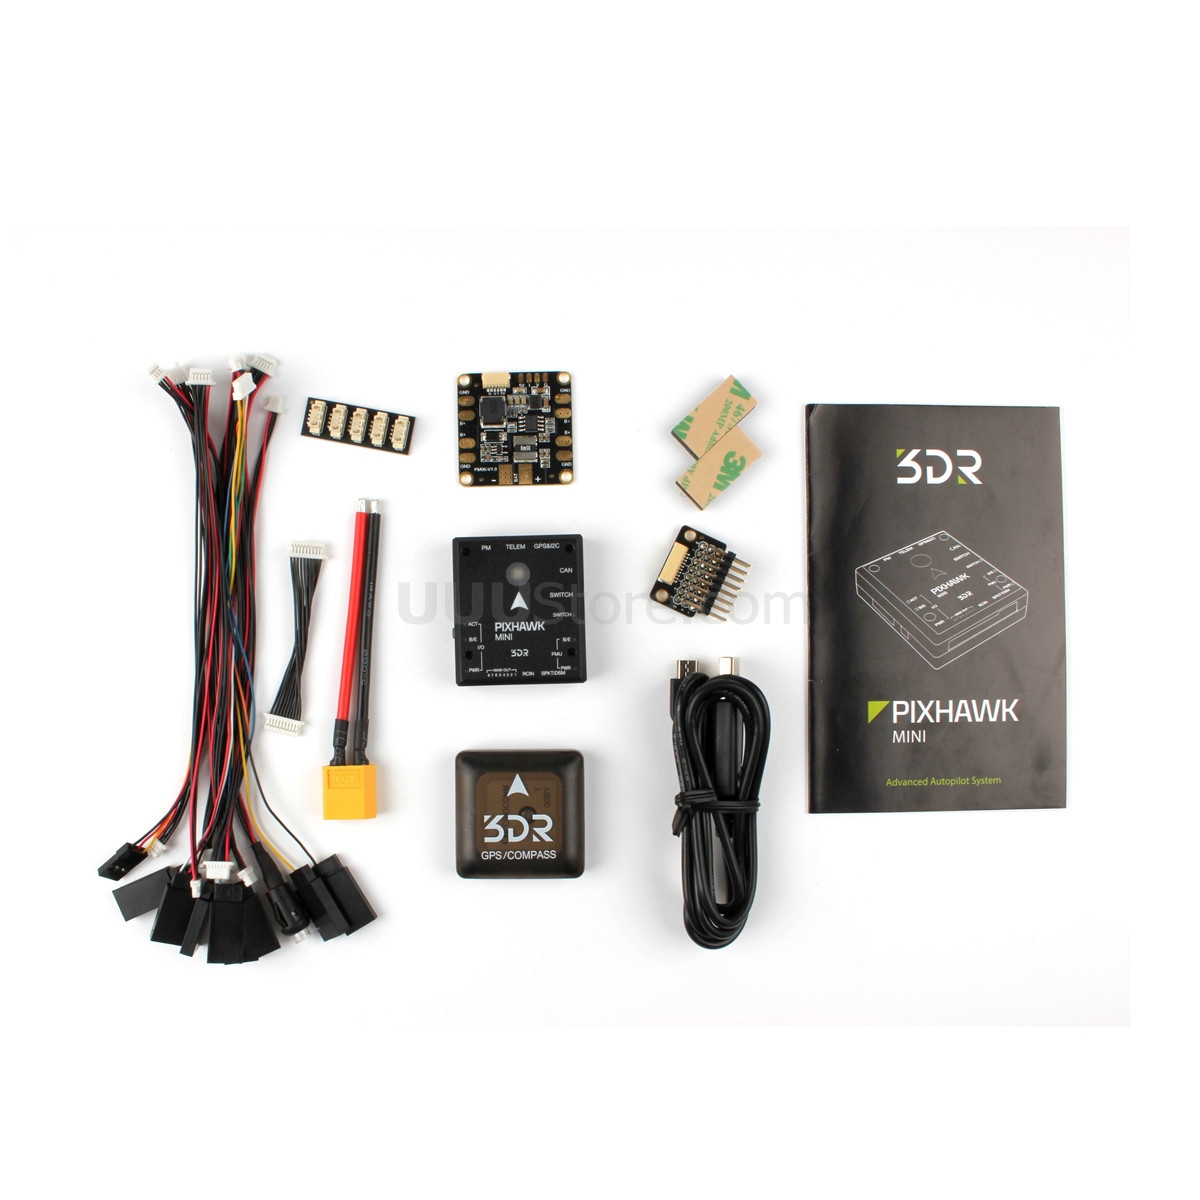 HolyBro 3DR Pixhawk Mini Autopilot & Micro M8N GPS Built-in Com Pass & PDB Board Flight Controller For RC FPV Drone